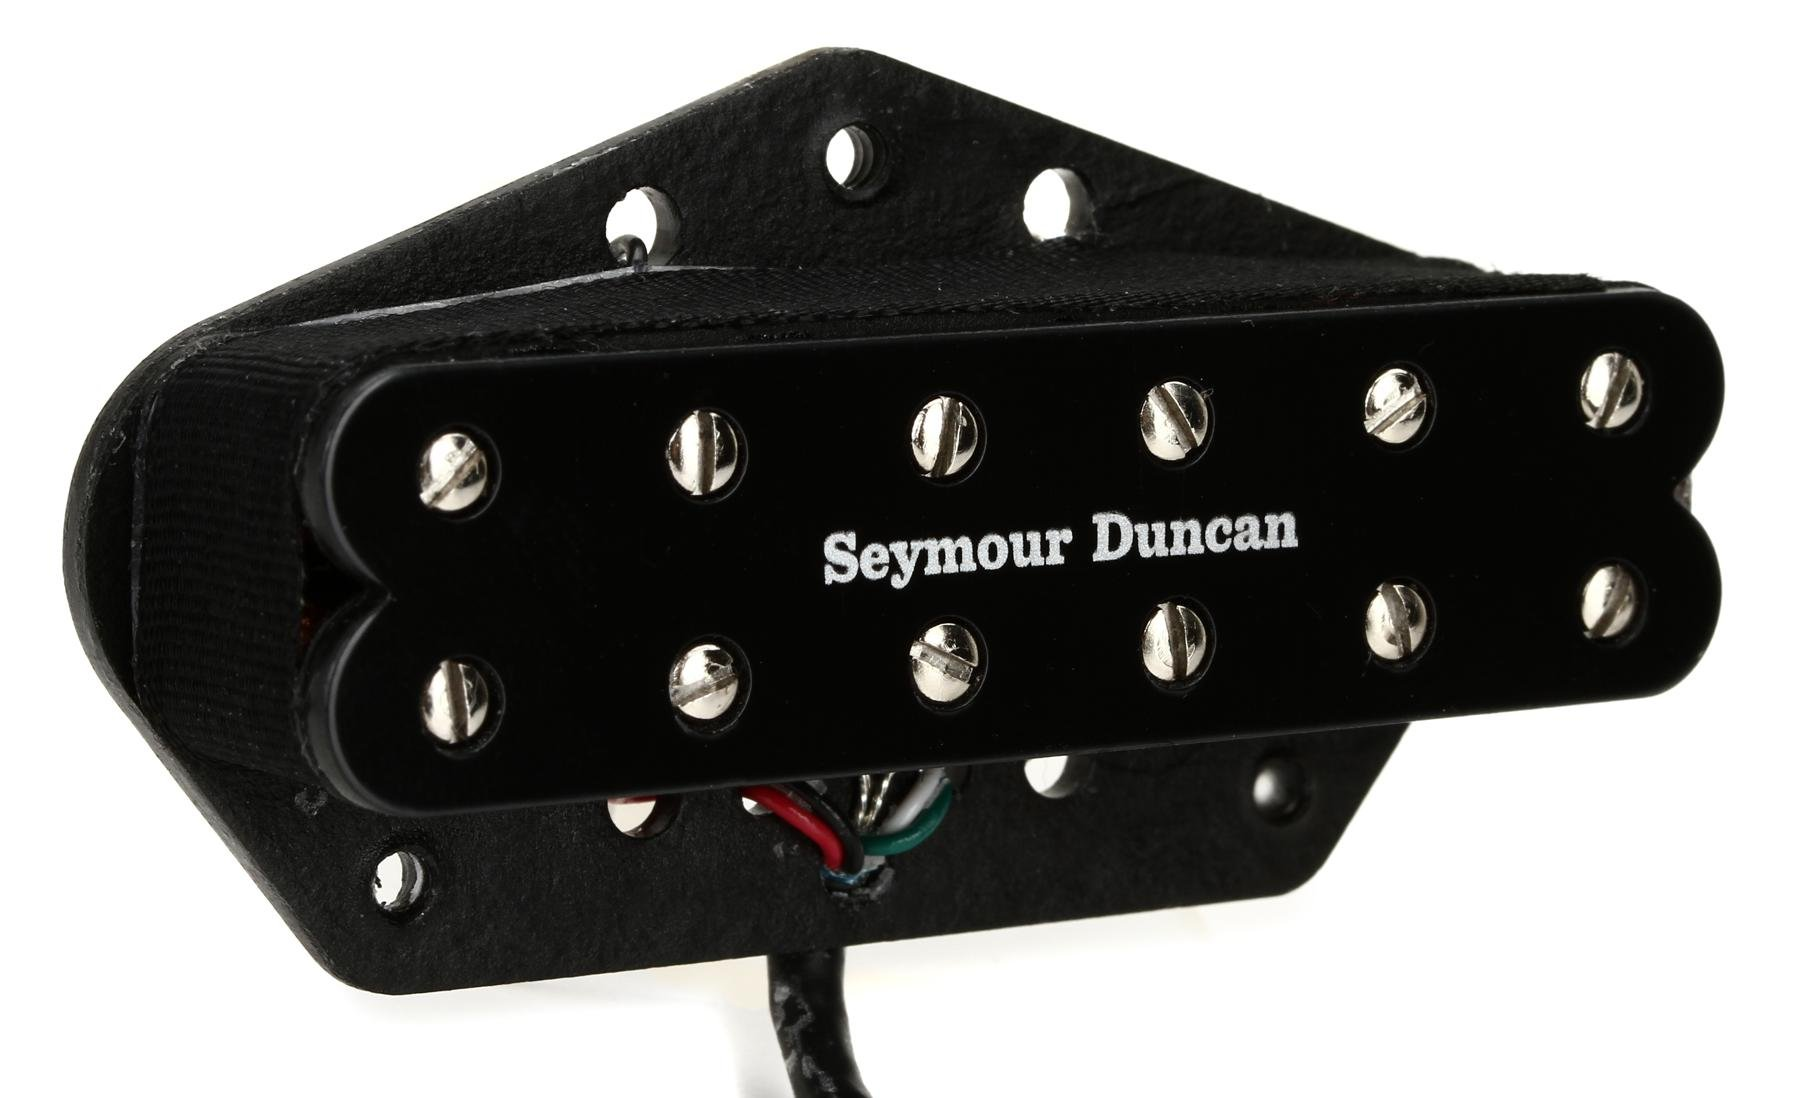 Seymour Duncan St59 1 Little 59 Humbucker Tele Pickup Black Dimebucker Volume Tone 3 Way Switch Wiring Diagram Bridge Image